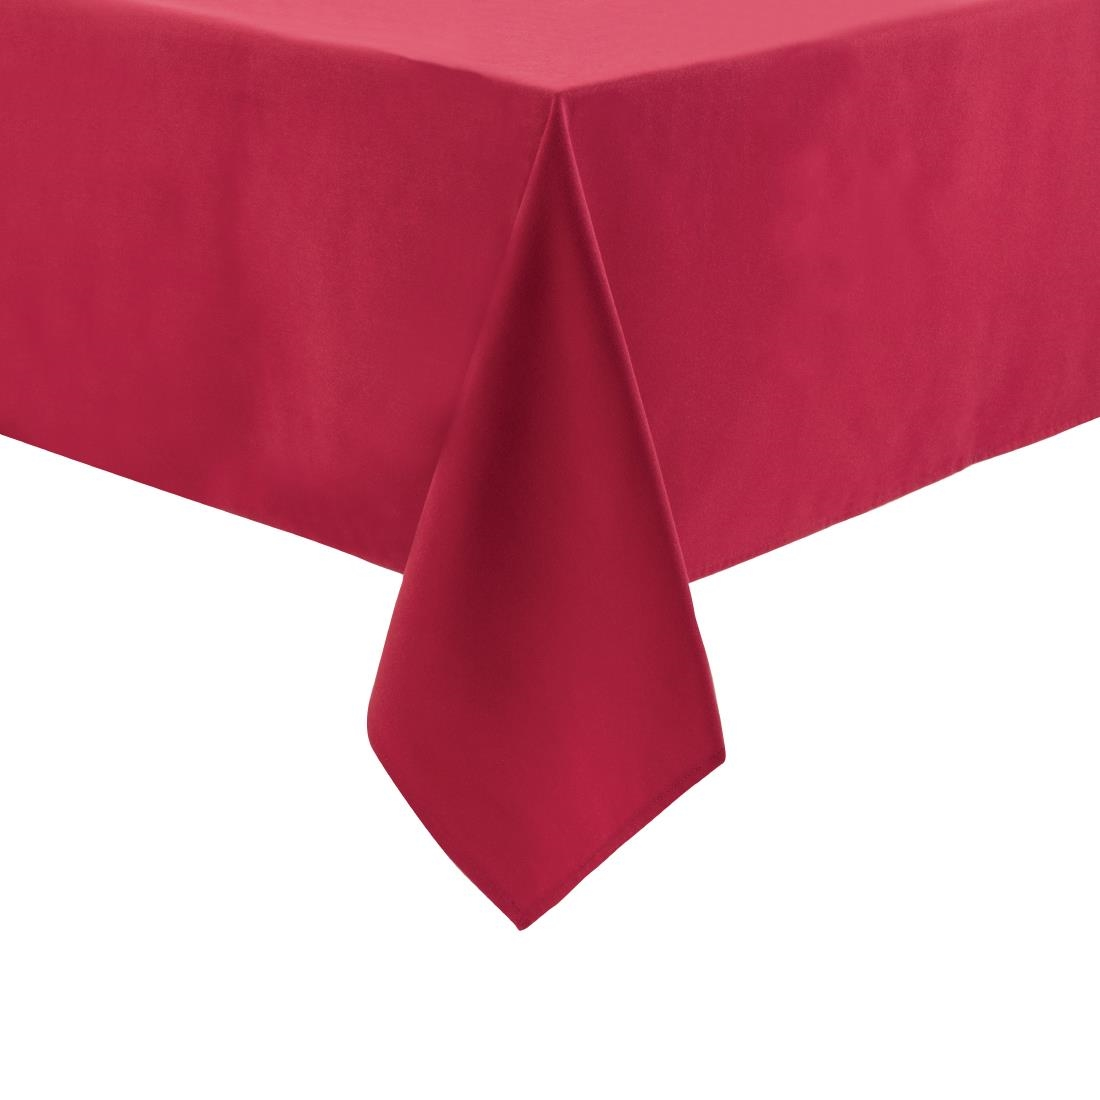 Image of Mitre Essentials Occasions Tablecloth Burgundy 280cm